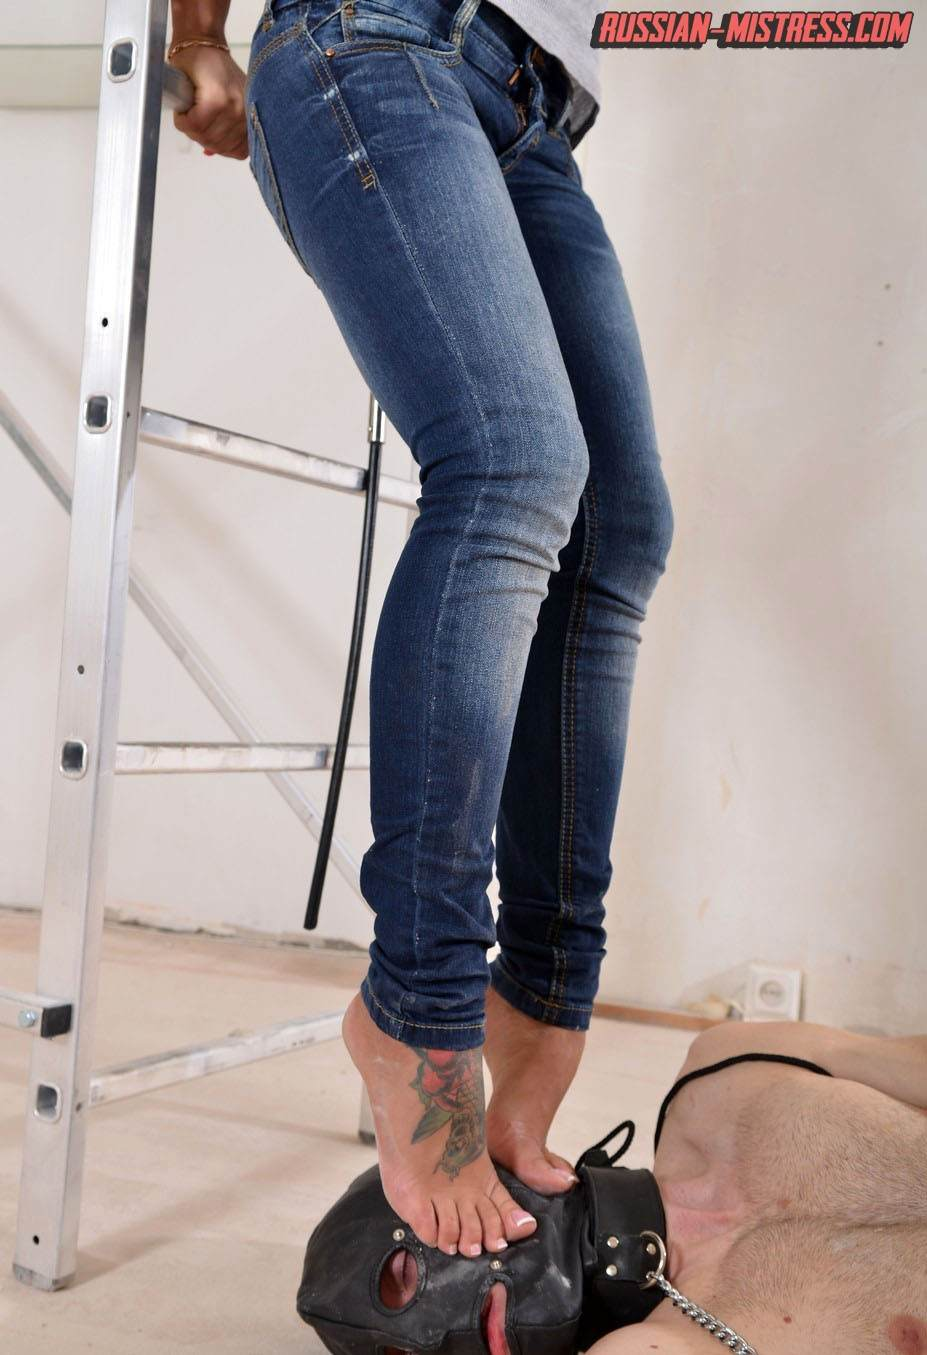 Picture #7 of Babe in sexy jeans and high heels does trampling and then takes out strap-on toy to end femdom lesson with a big bang